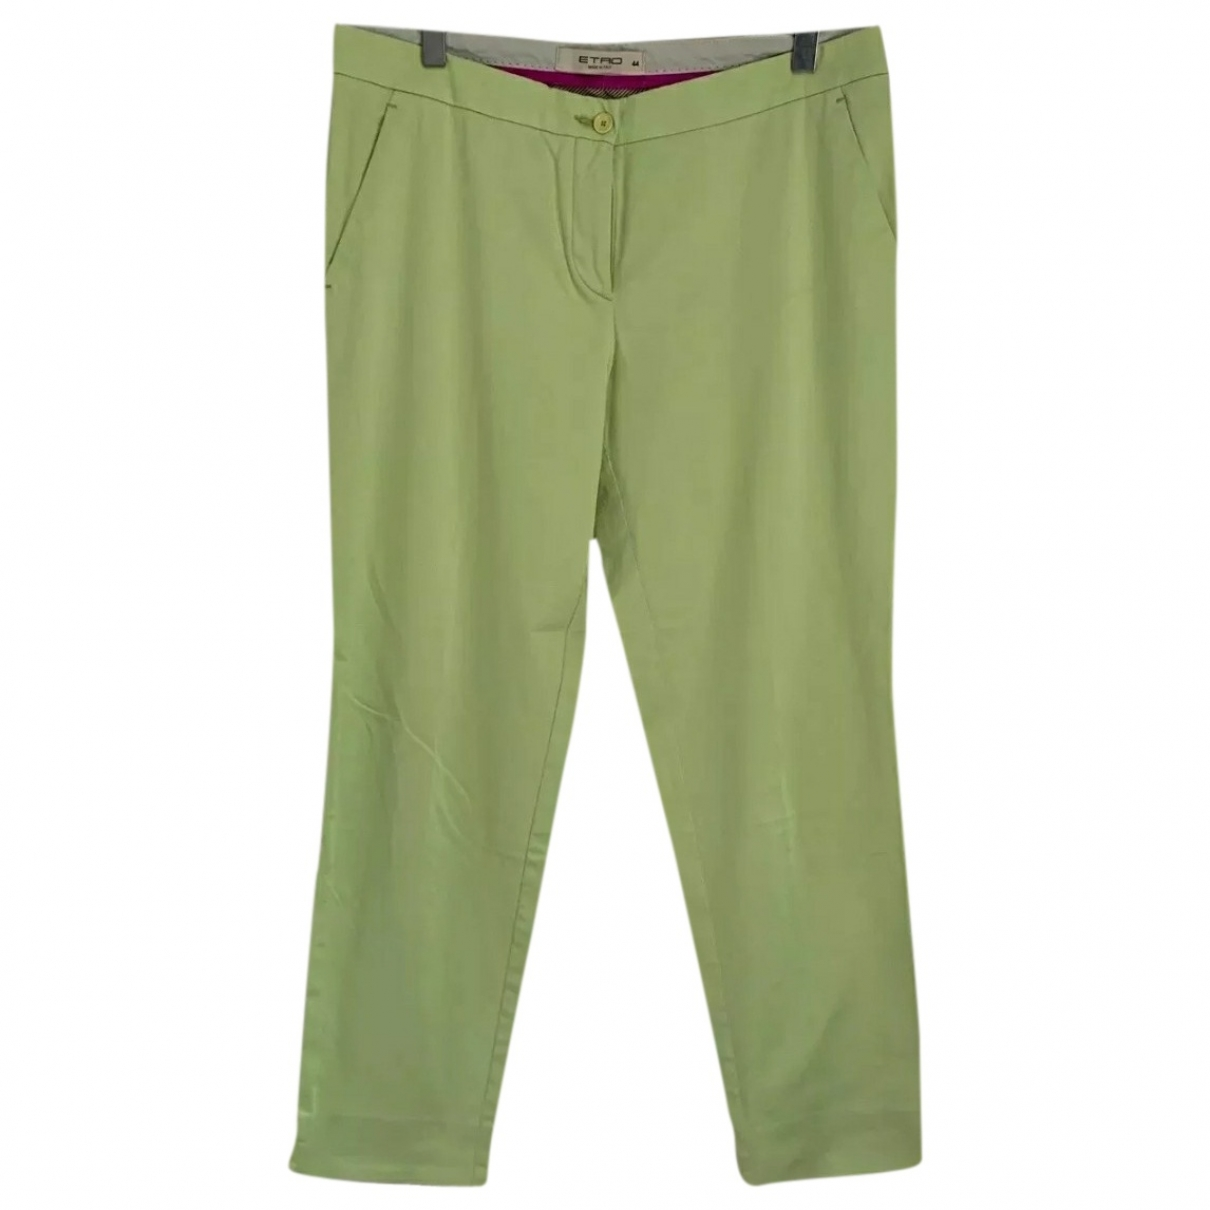 Etro \N Green Cotton Trousers for Women 44 IT